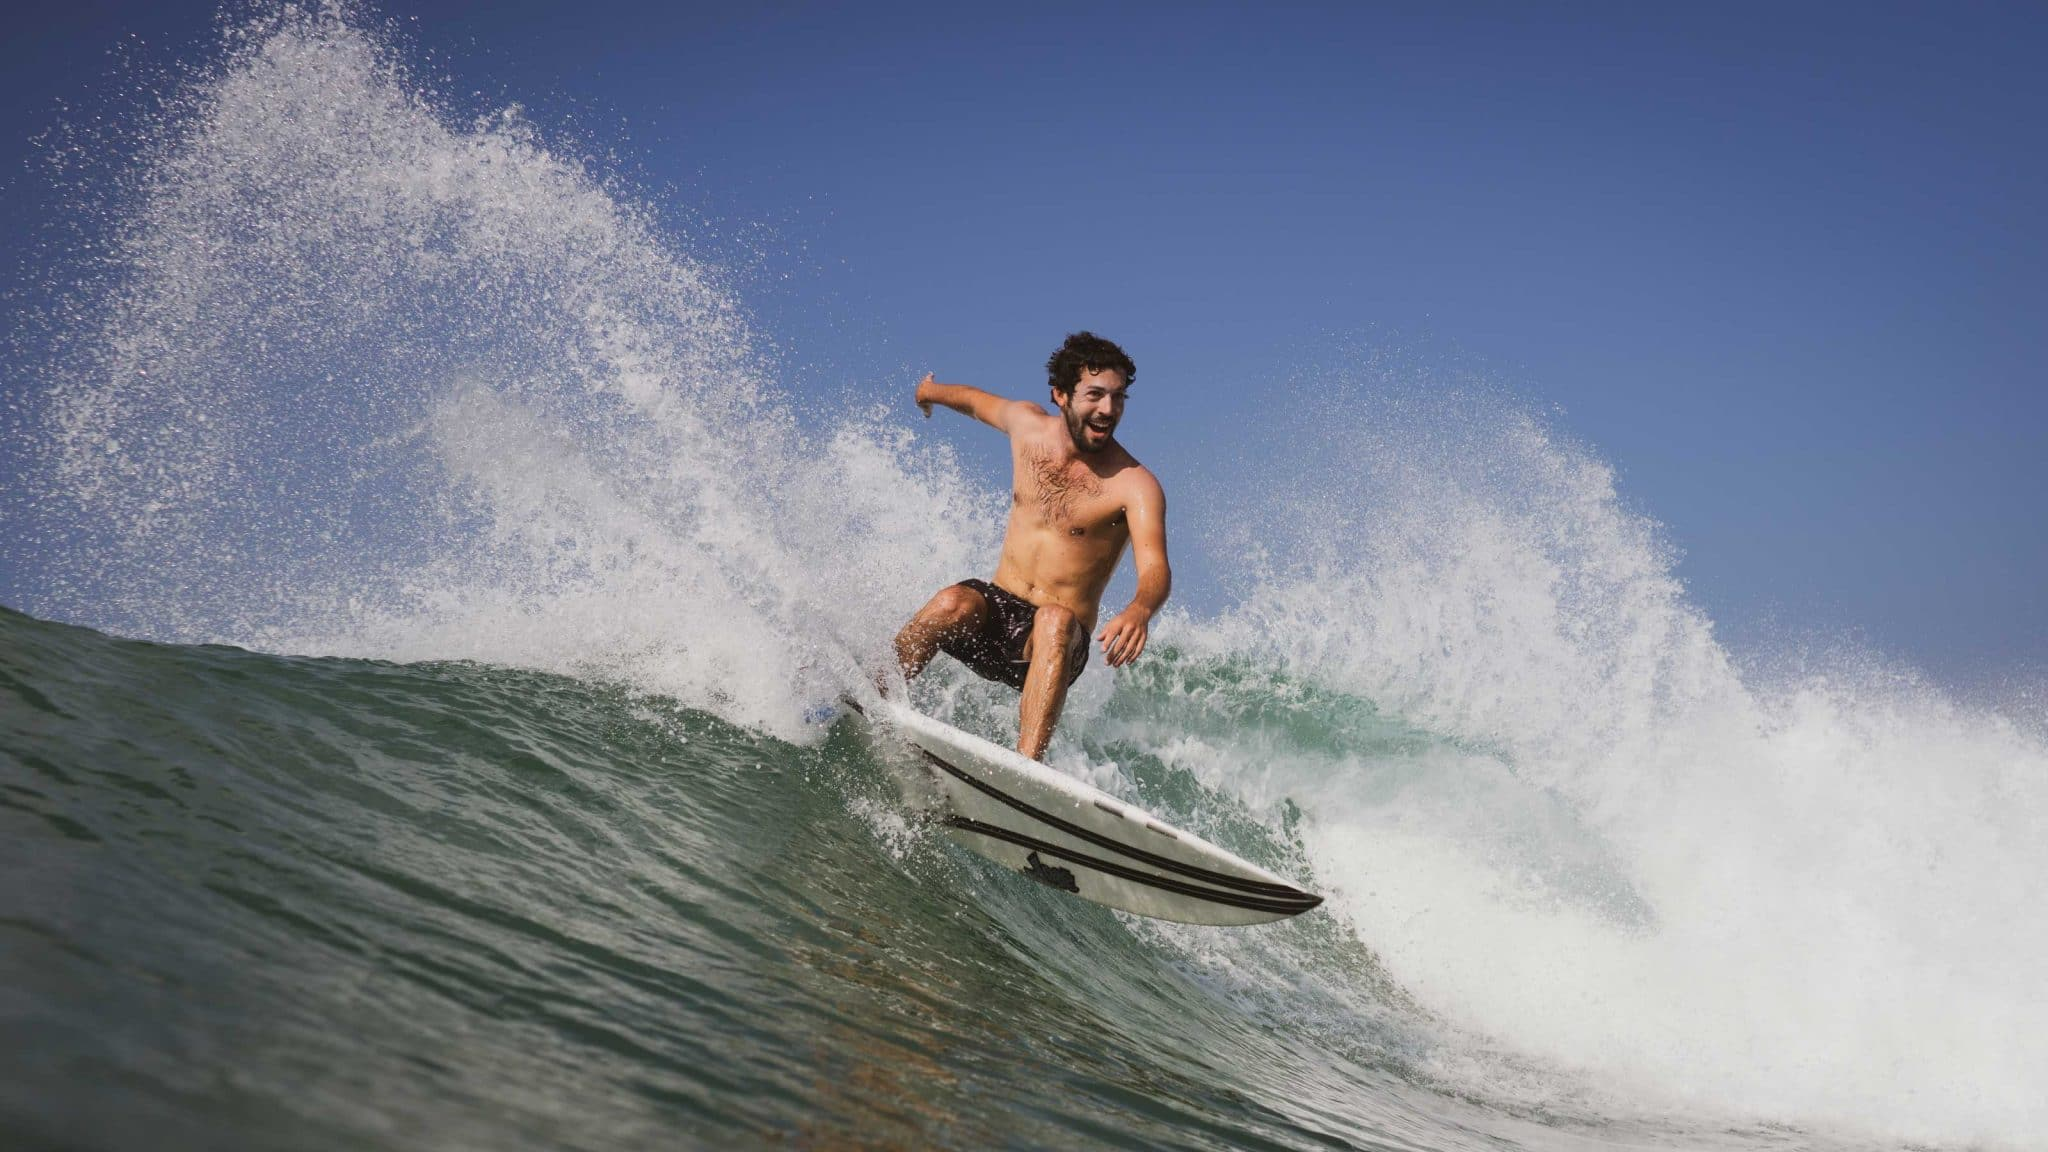 Snap is the basic maneuver for Level 2 surfers